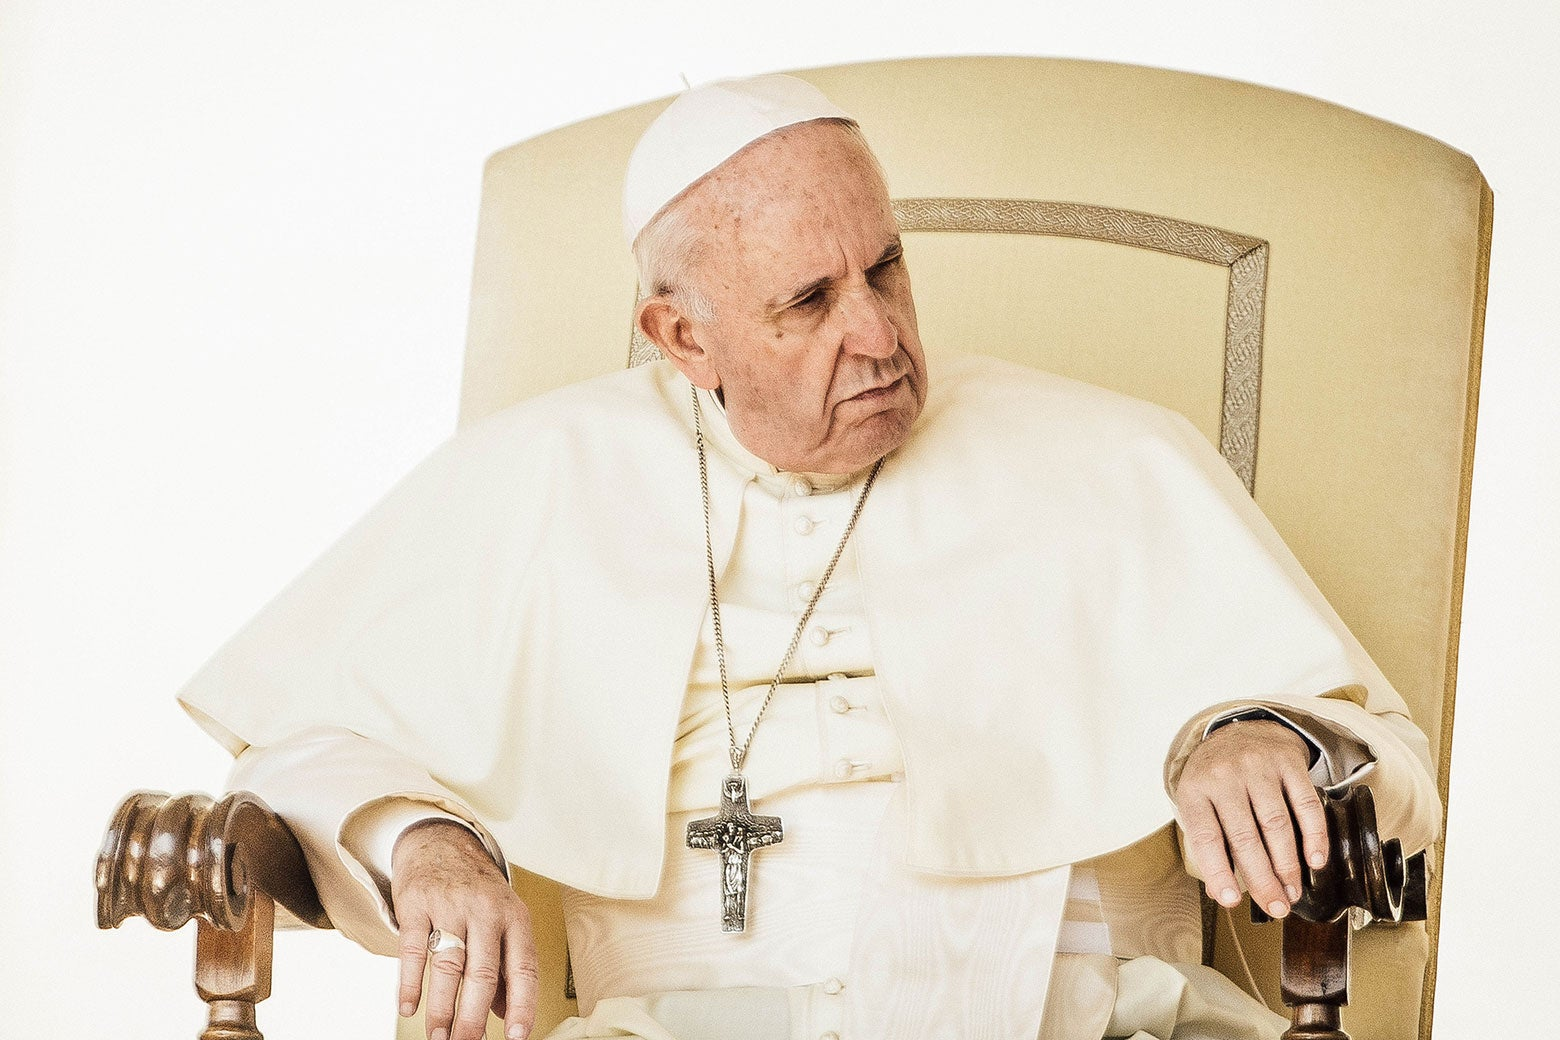 Pope Francis sits in an ornate chair.